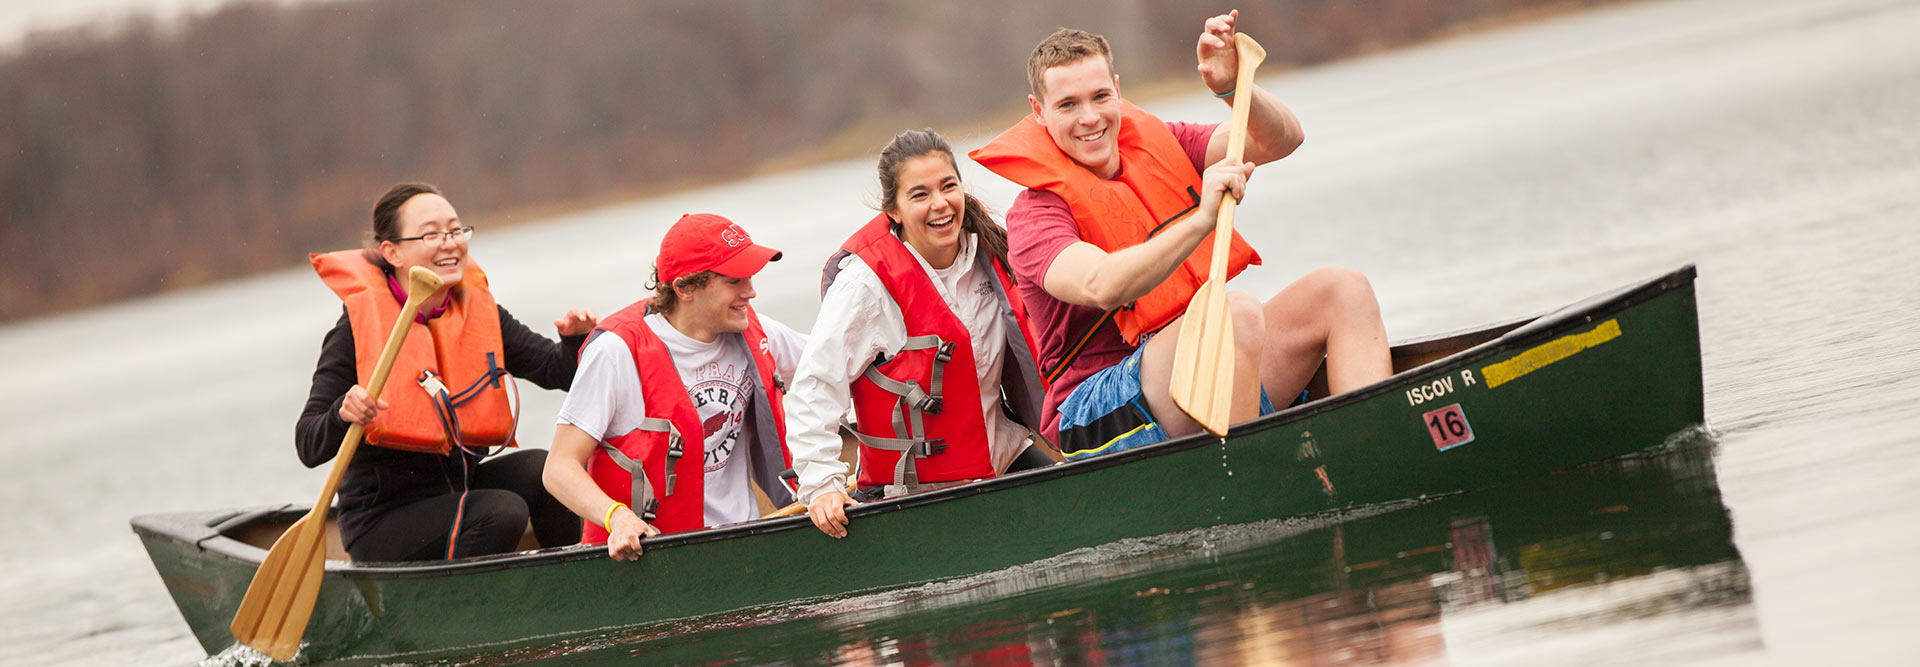 Explore the outdoors at CSB/SJU